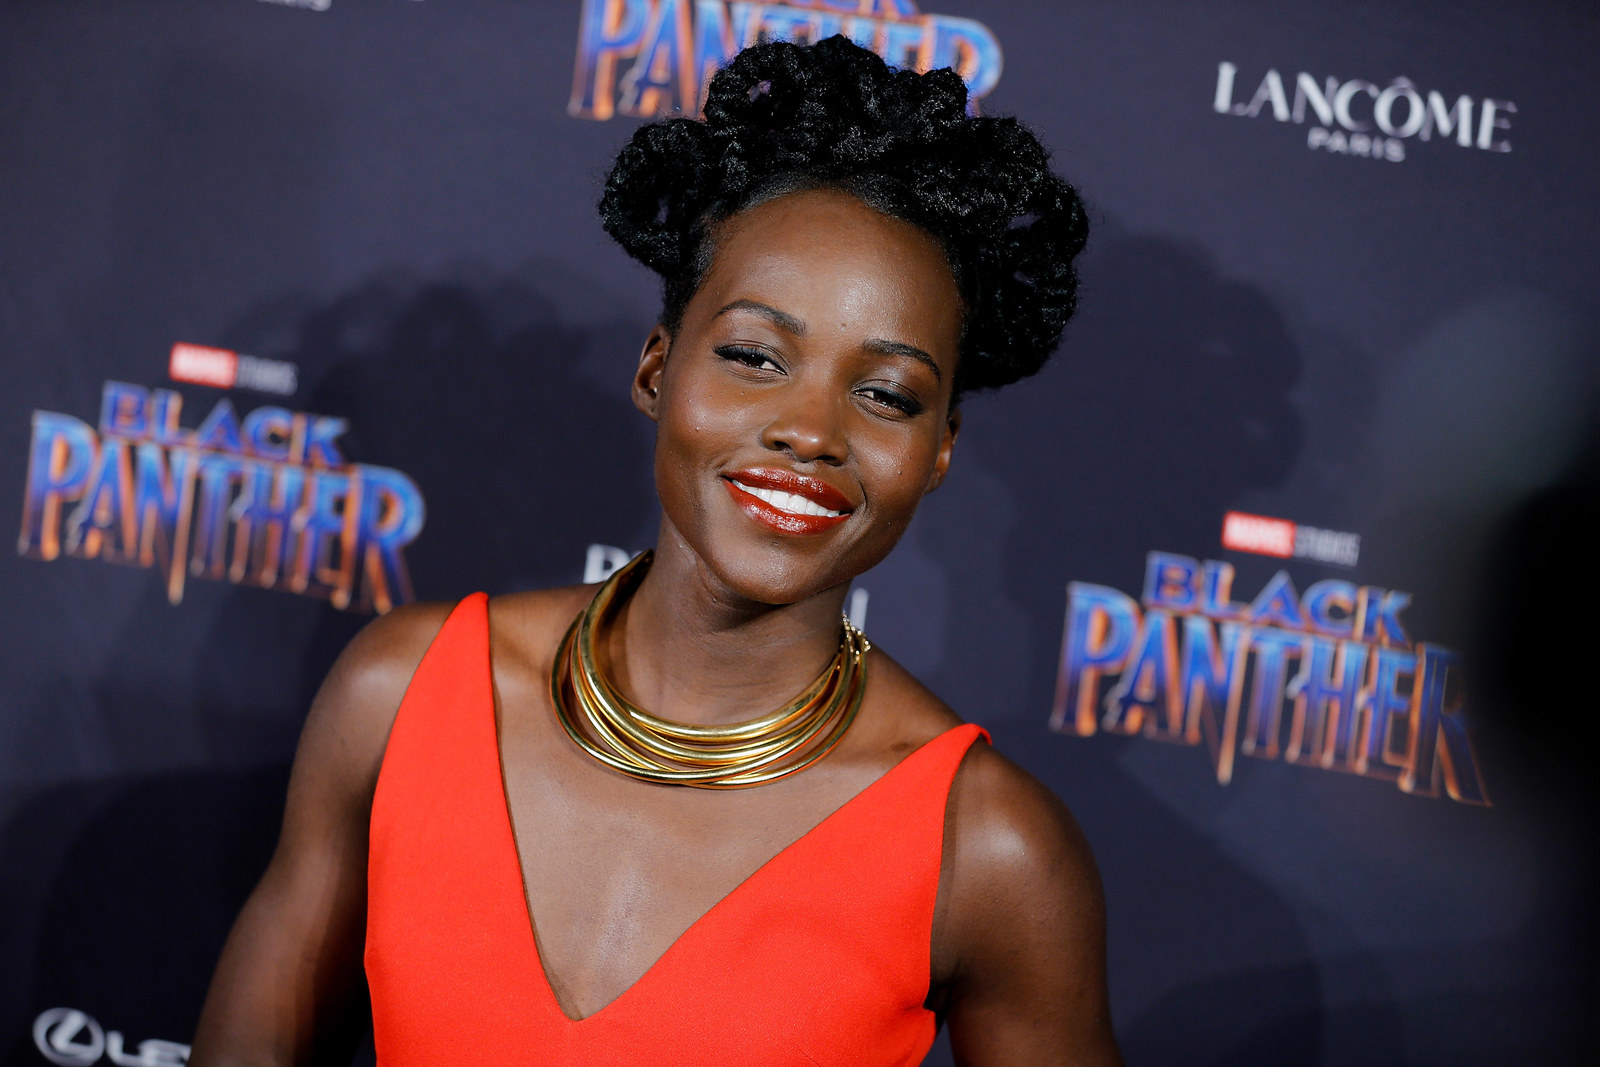 And he shares a birthday with Lupita Nyong'o, who turned 36.